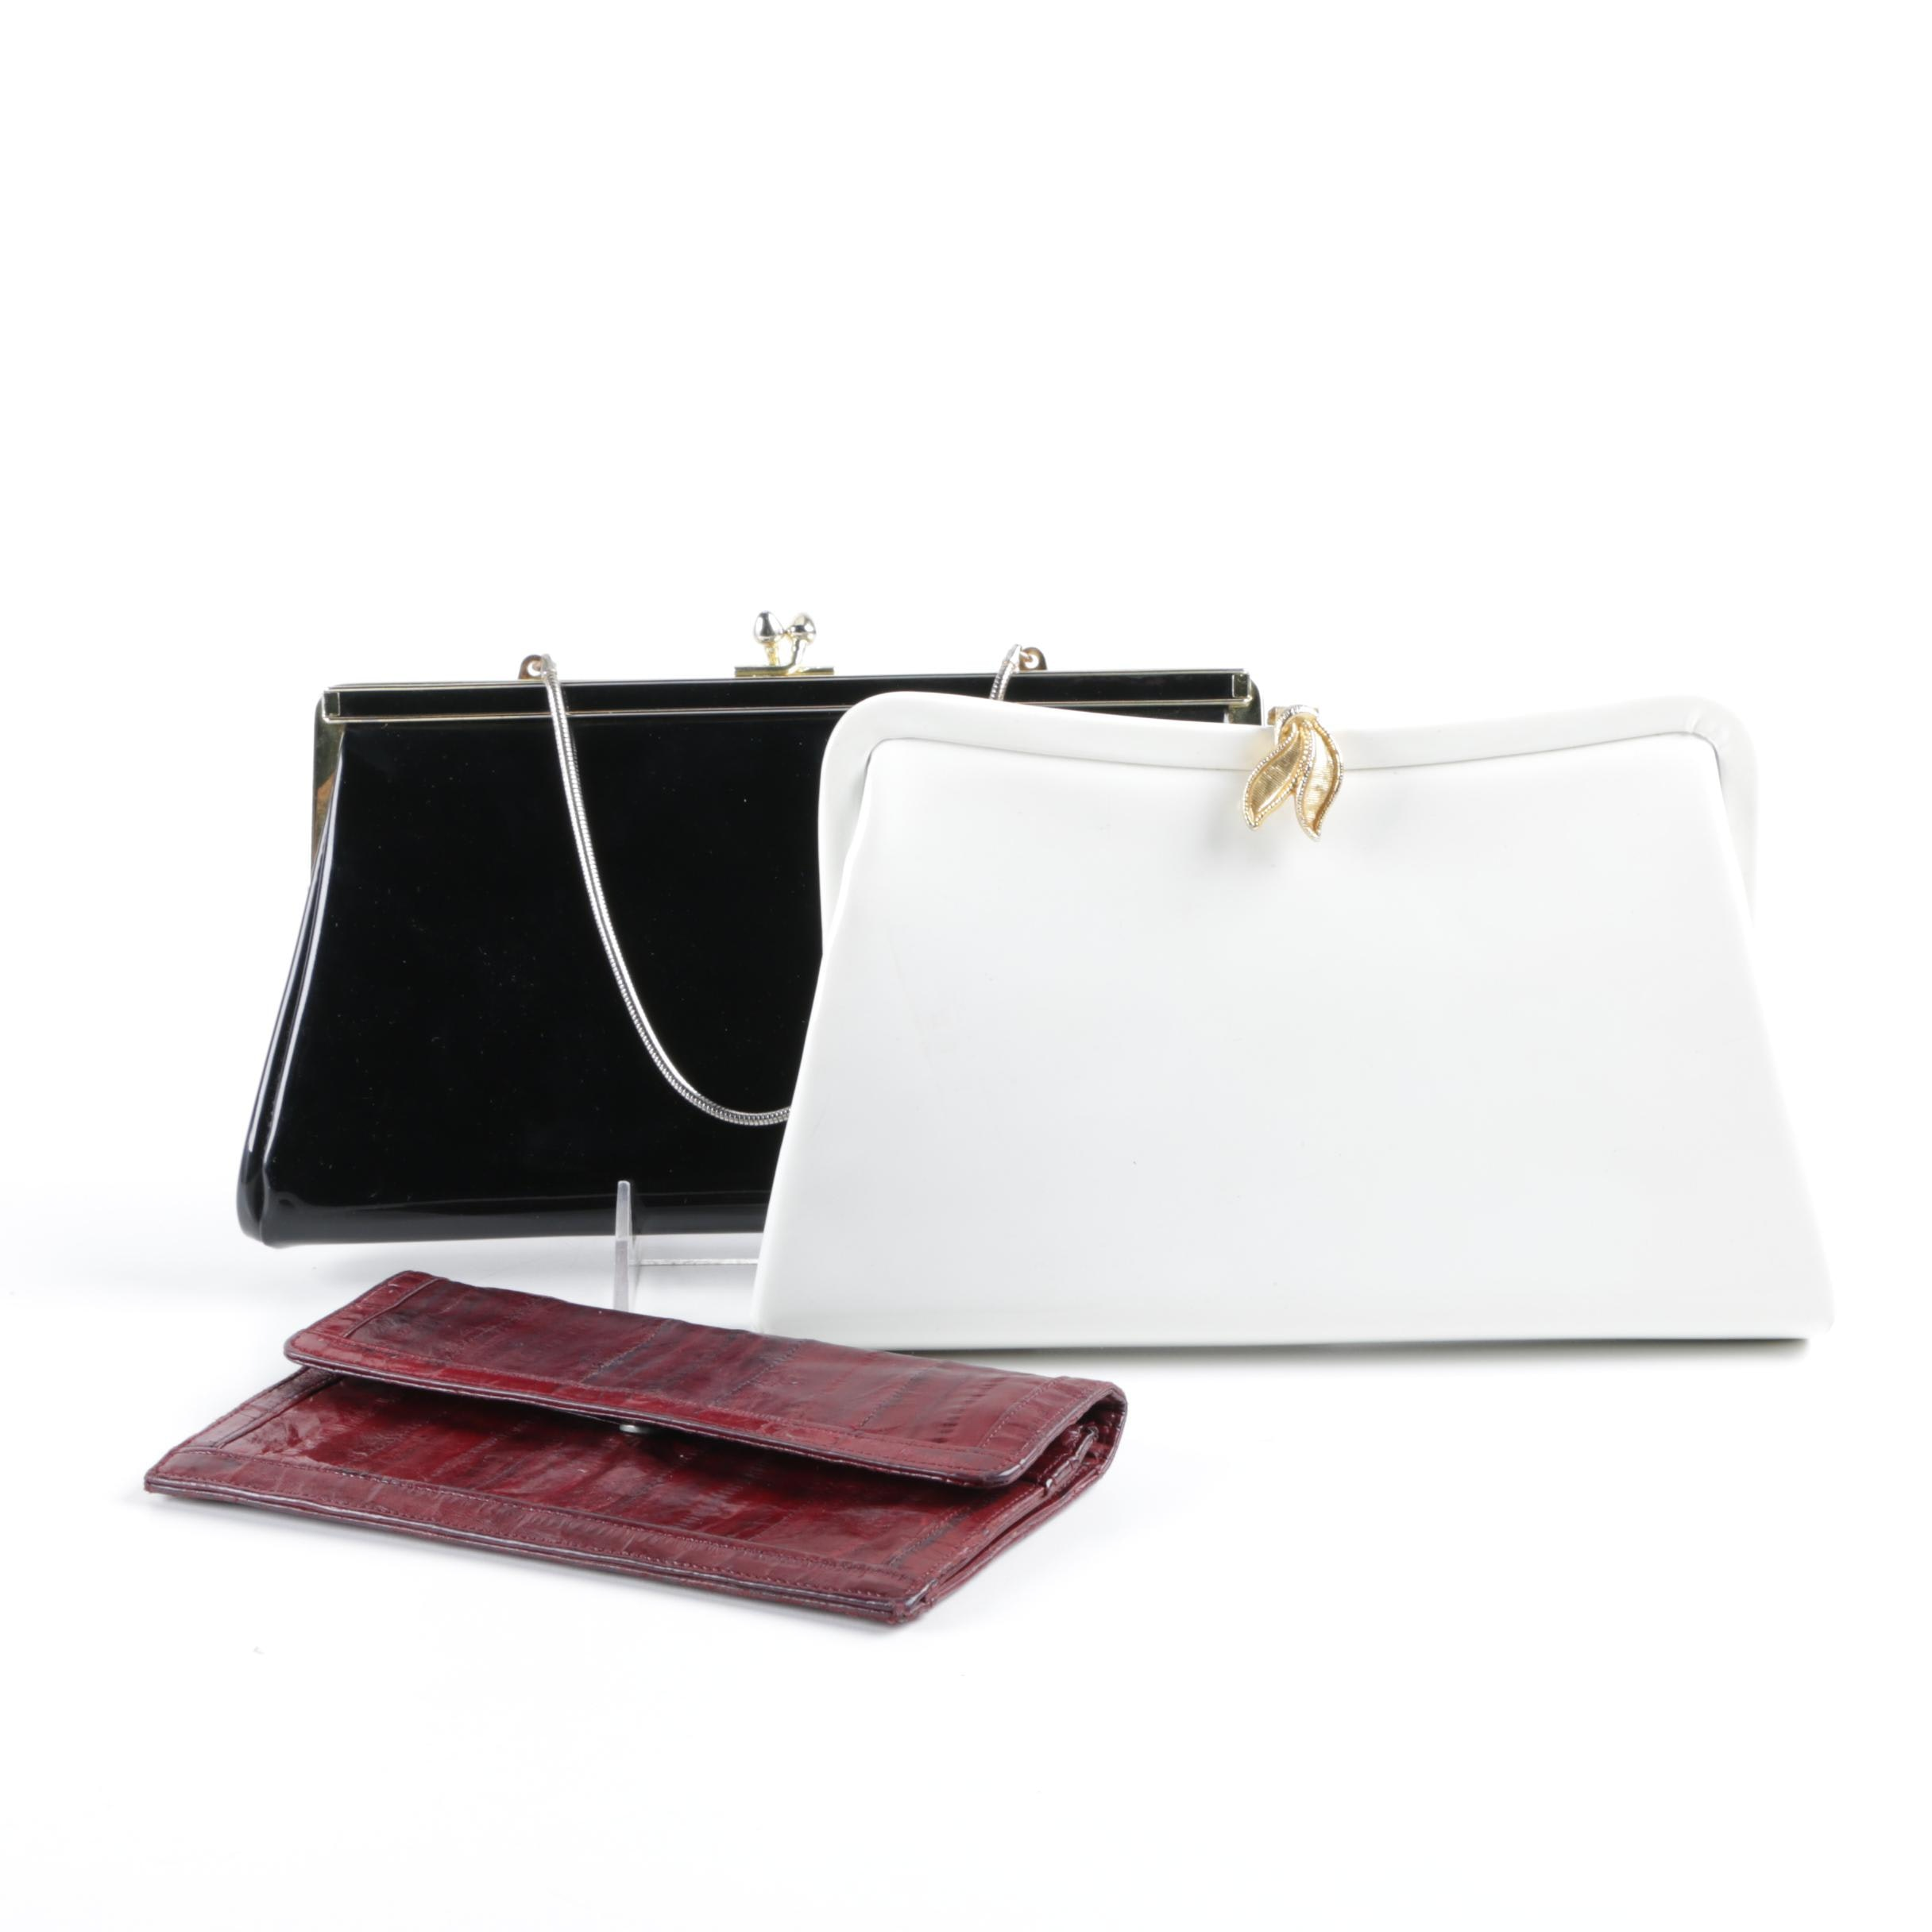 Three Vintage Patent Leather and Eel Skin Handbags